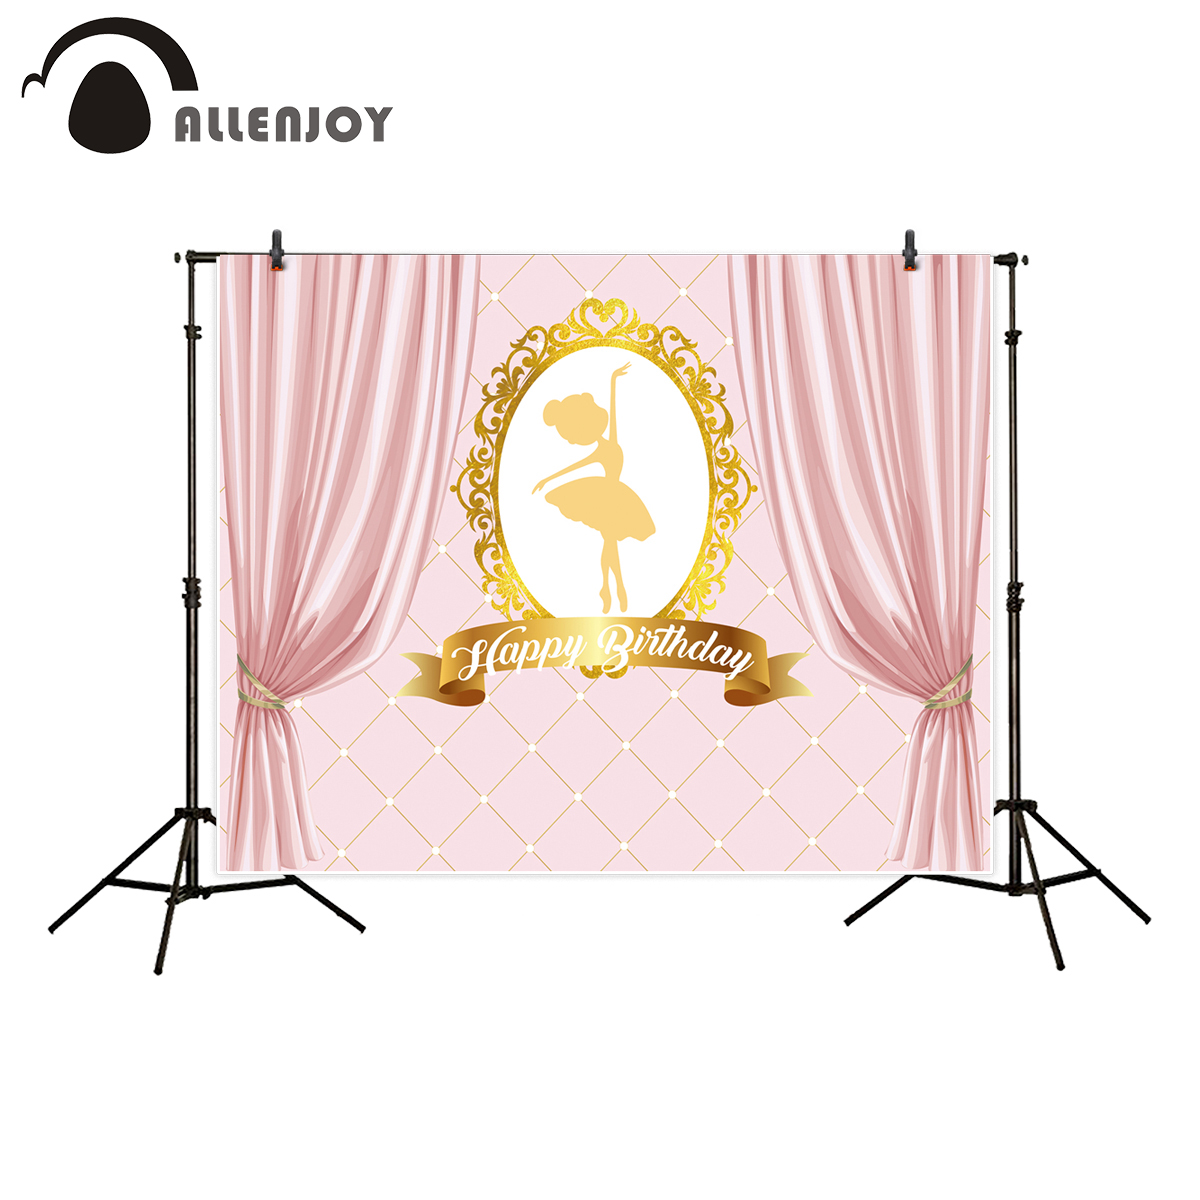 Allenjoy background for photo studio Ballerina girl theme birthday party pink photography backdrop printed new photography children s background birthday vintage bear balloons garland digital printing party send folded studio photo prop